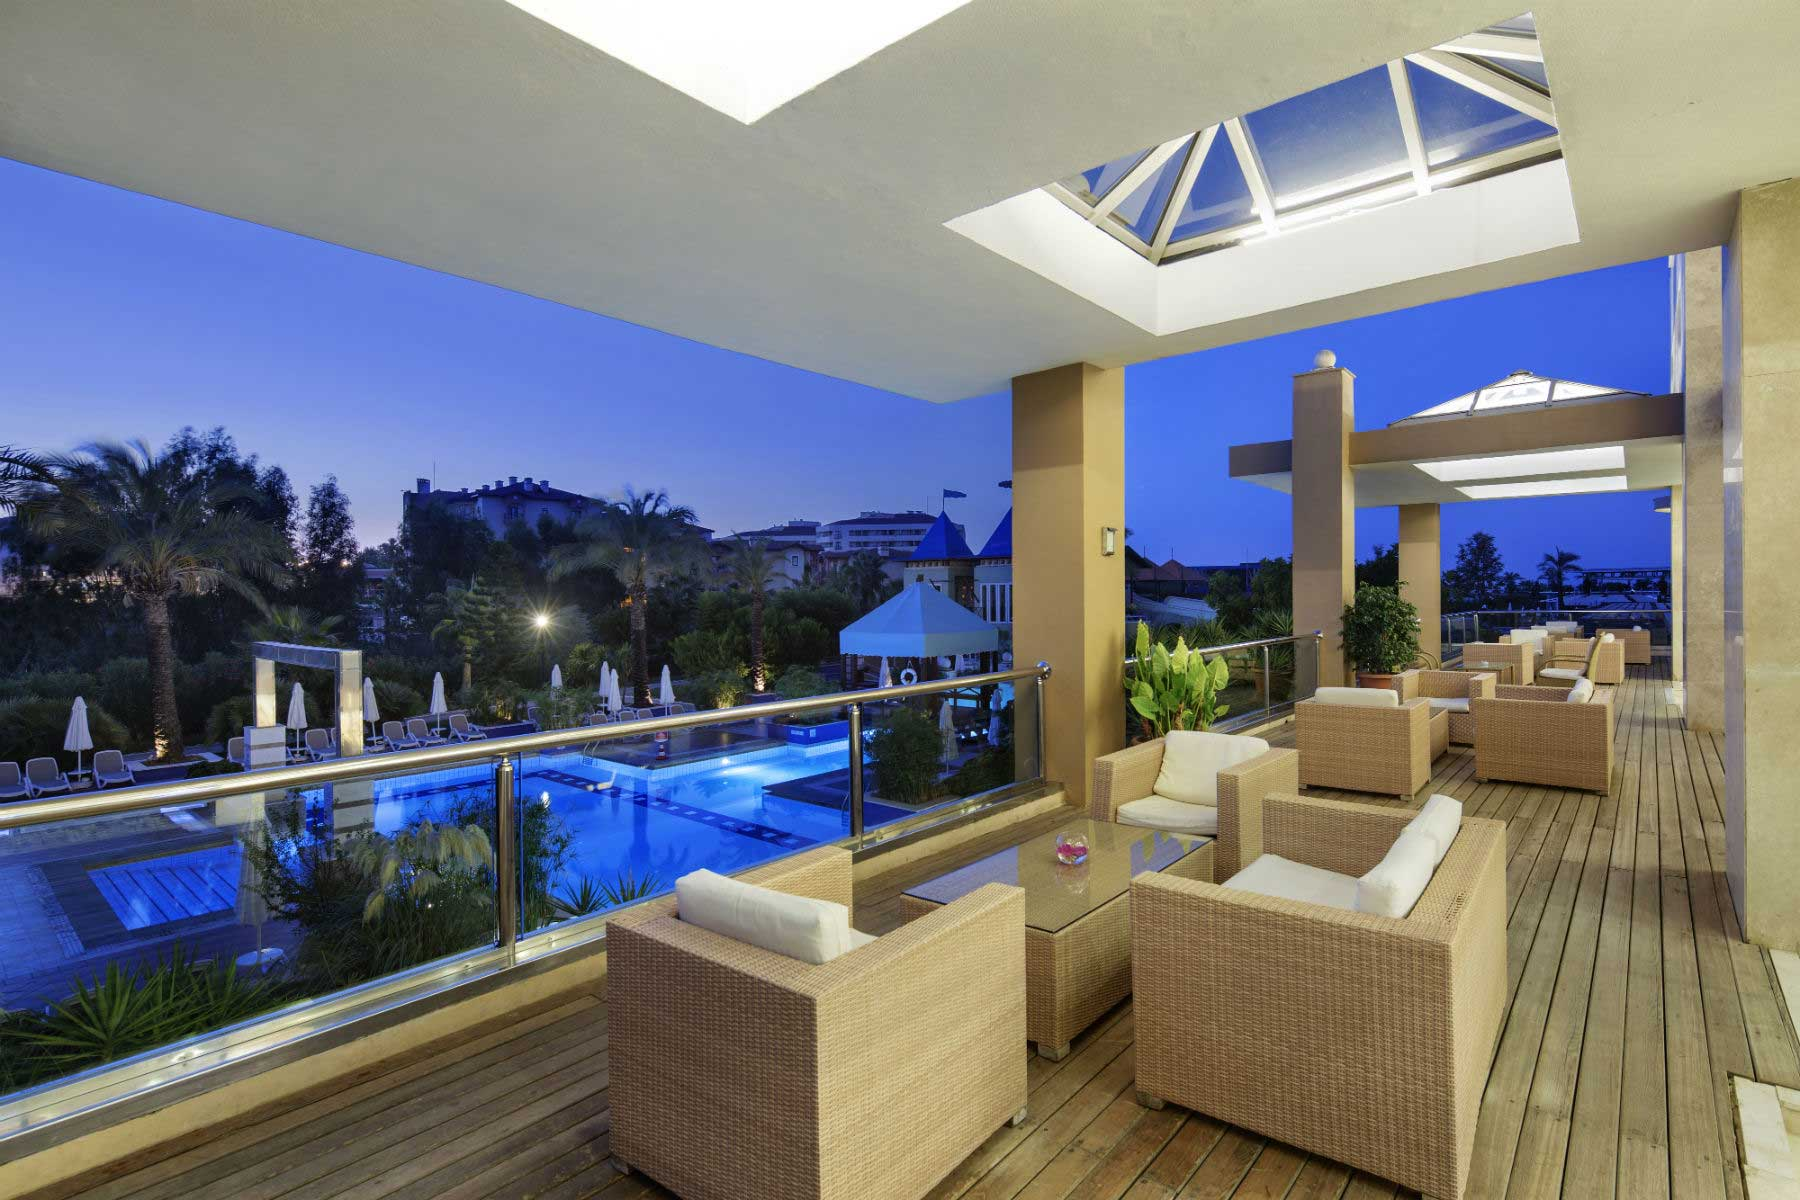 The Xanthe Resort & Spa roof bar